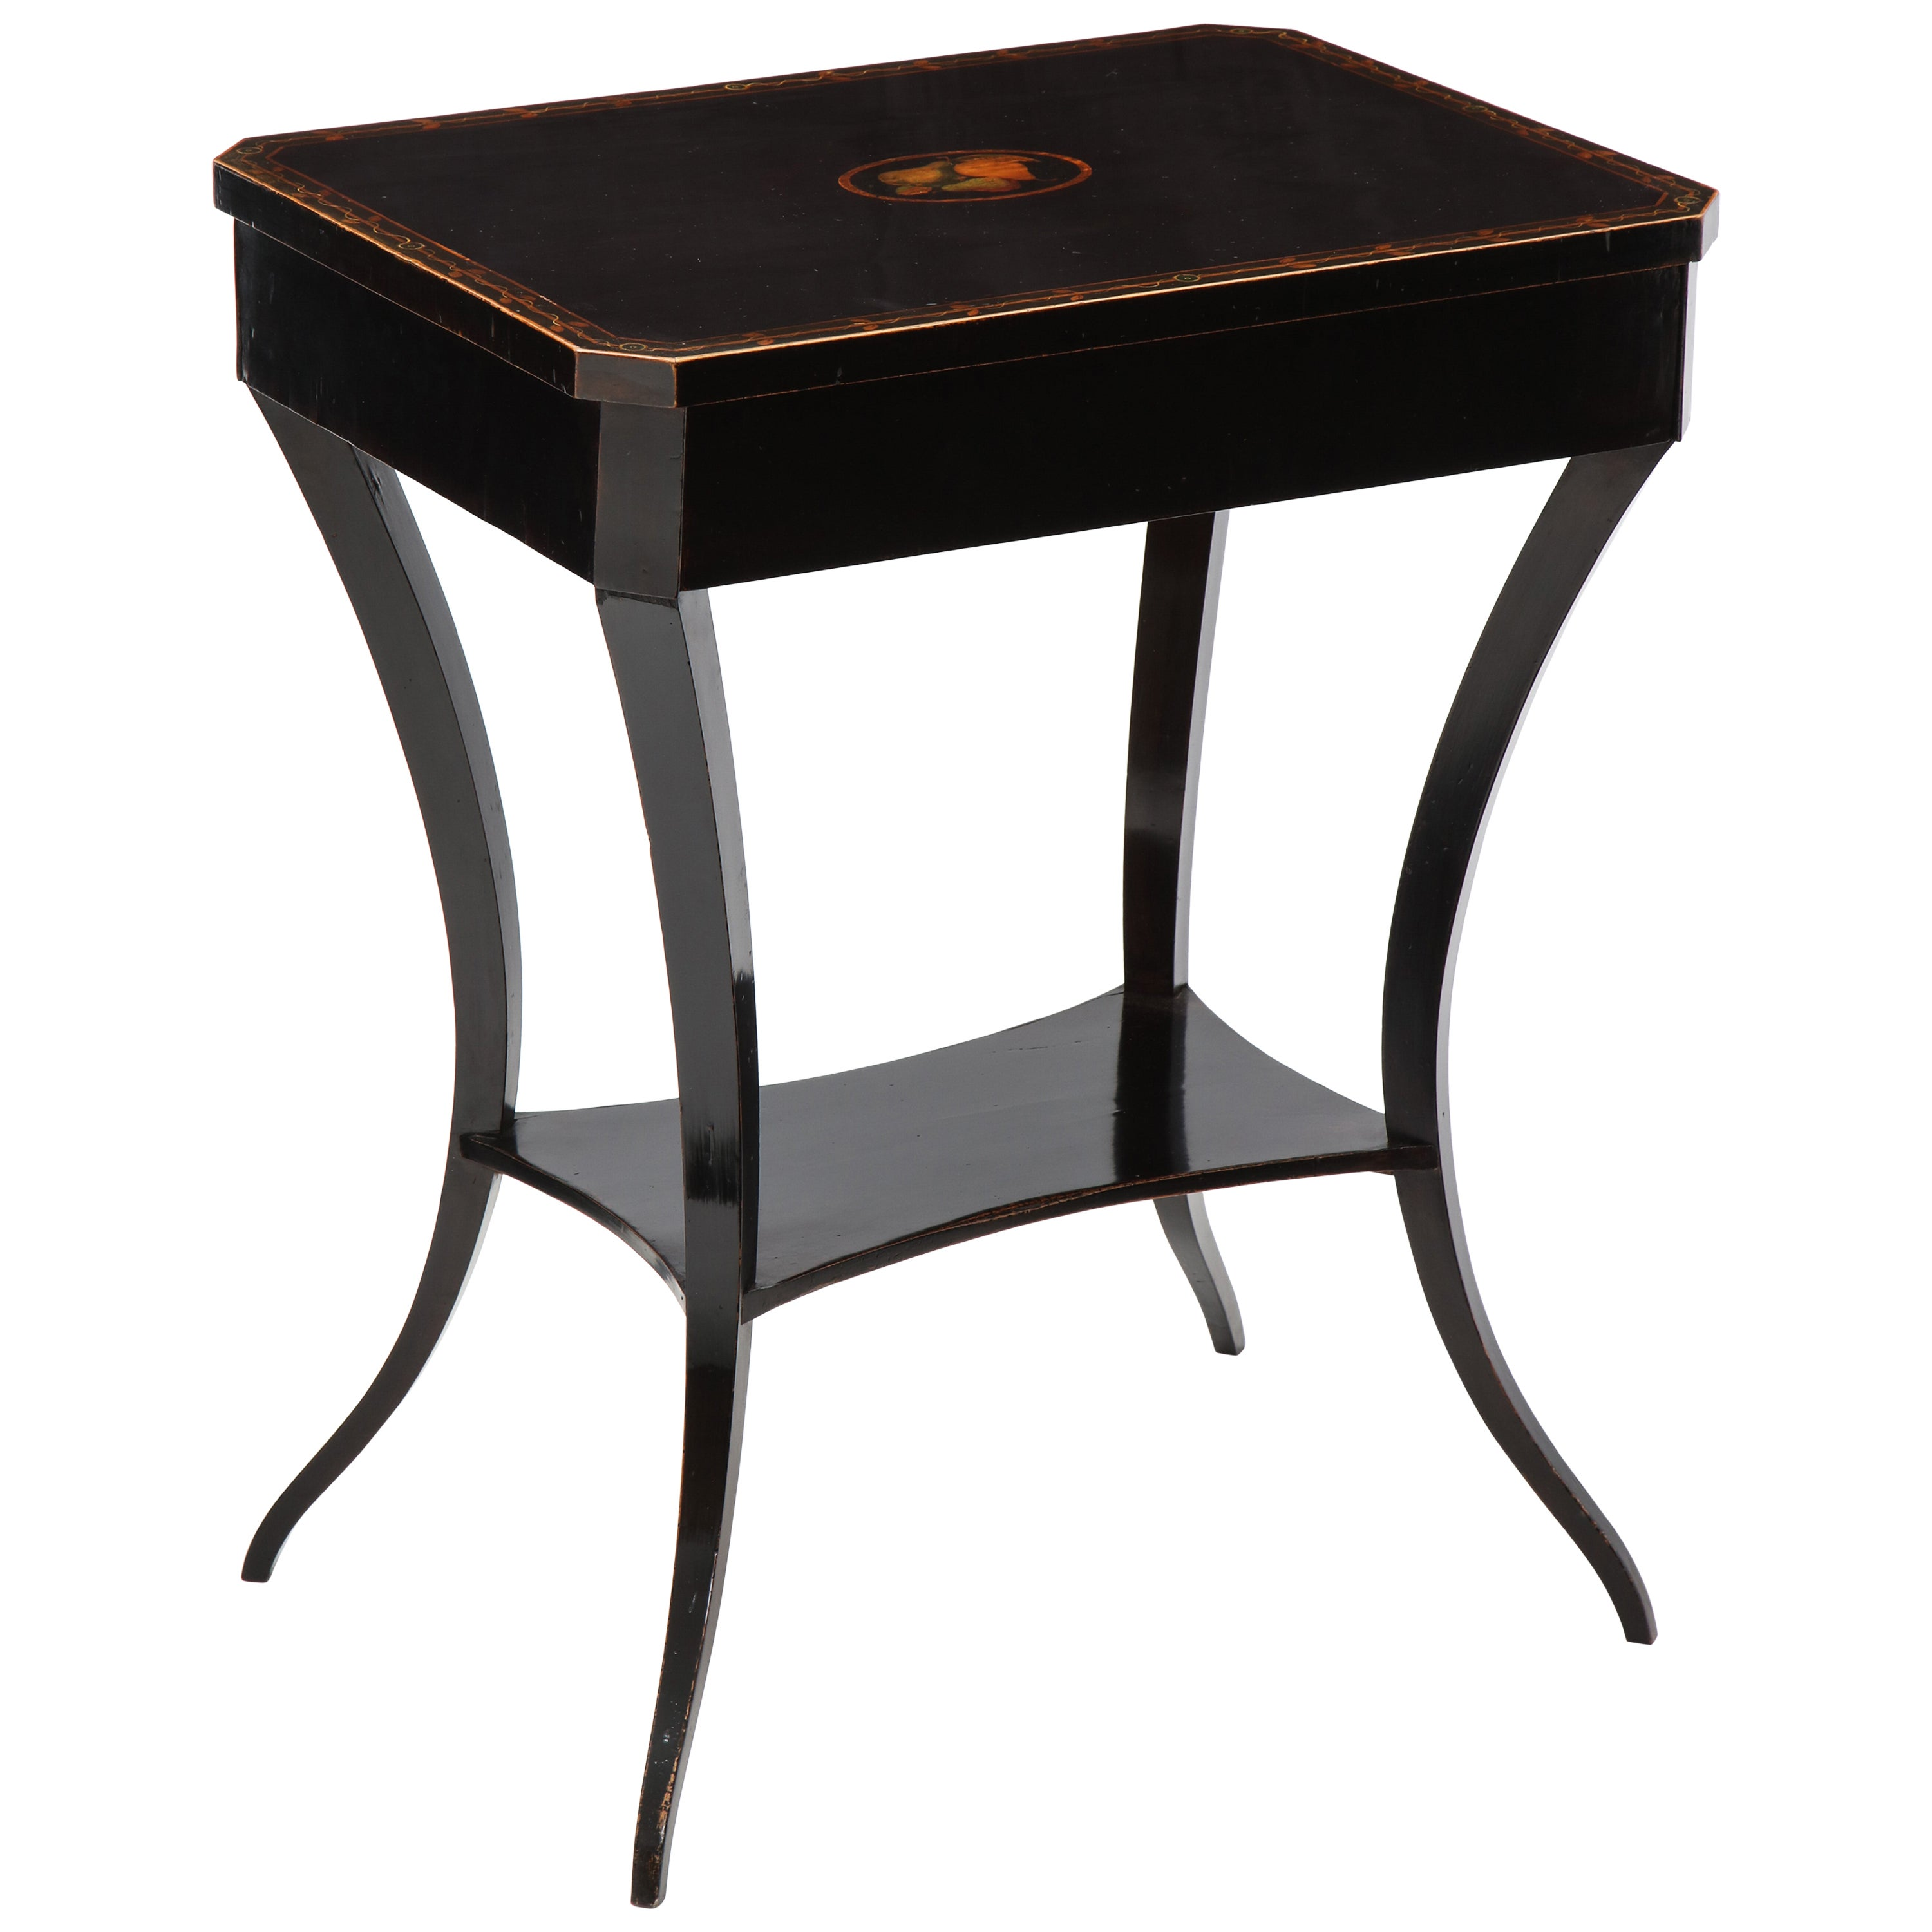 Austrian Empire Fruitwood, Stenciled and Ebonized Side Table, circa 1820s